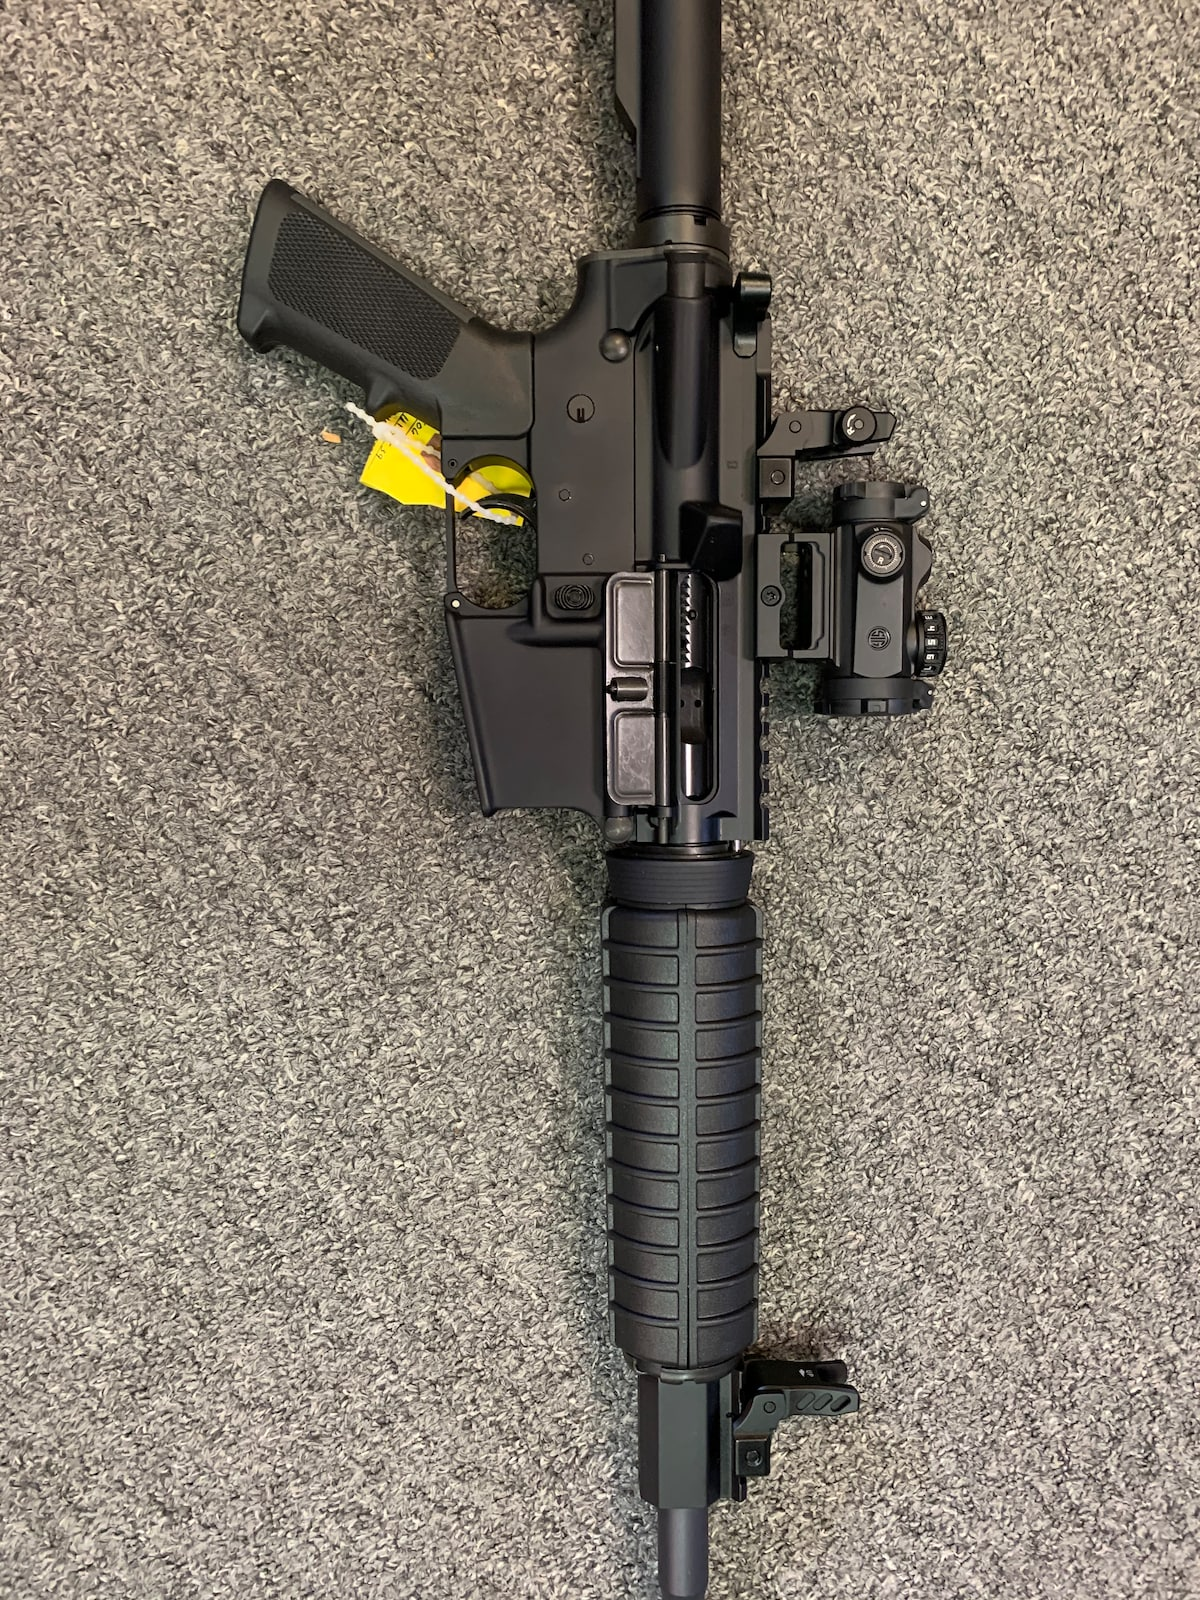 ANDERSON MANUFACTURING AM-15 AR15 Rifle